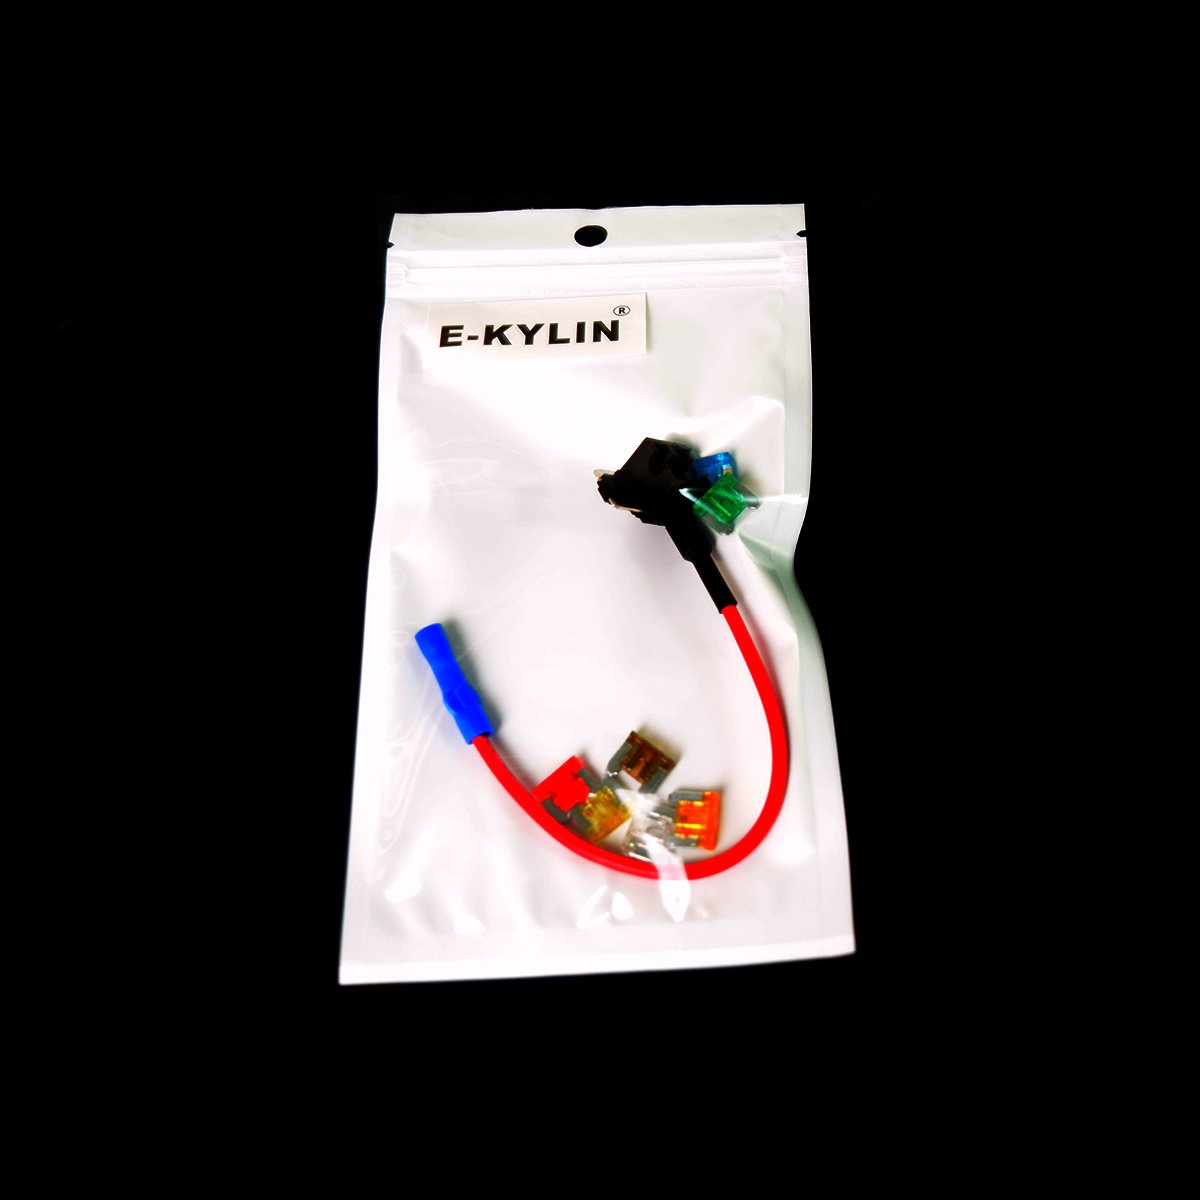 E Kylin Car Motor Add Circuit Blade Style Fuse Adapter Cable A Atm Low Profile Mini Holder Tap